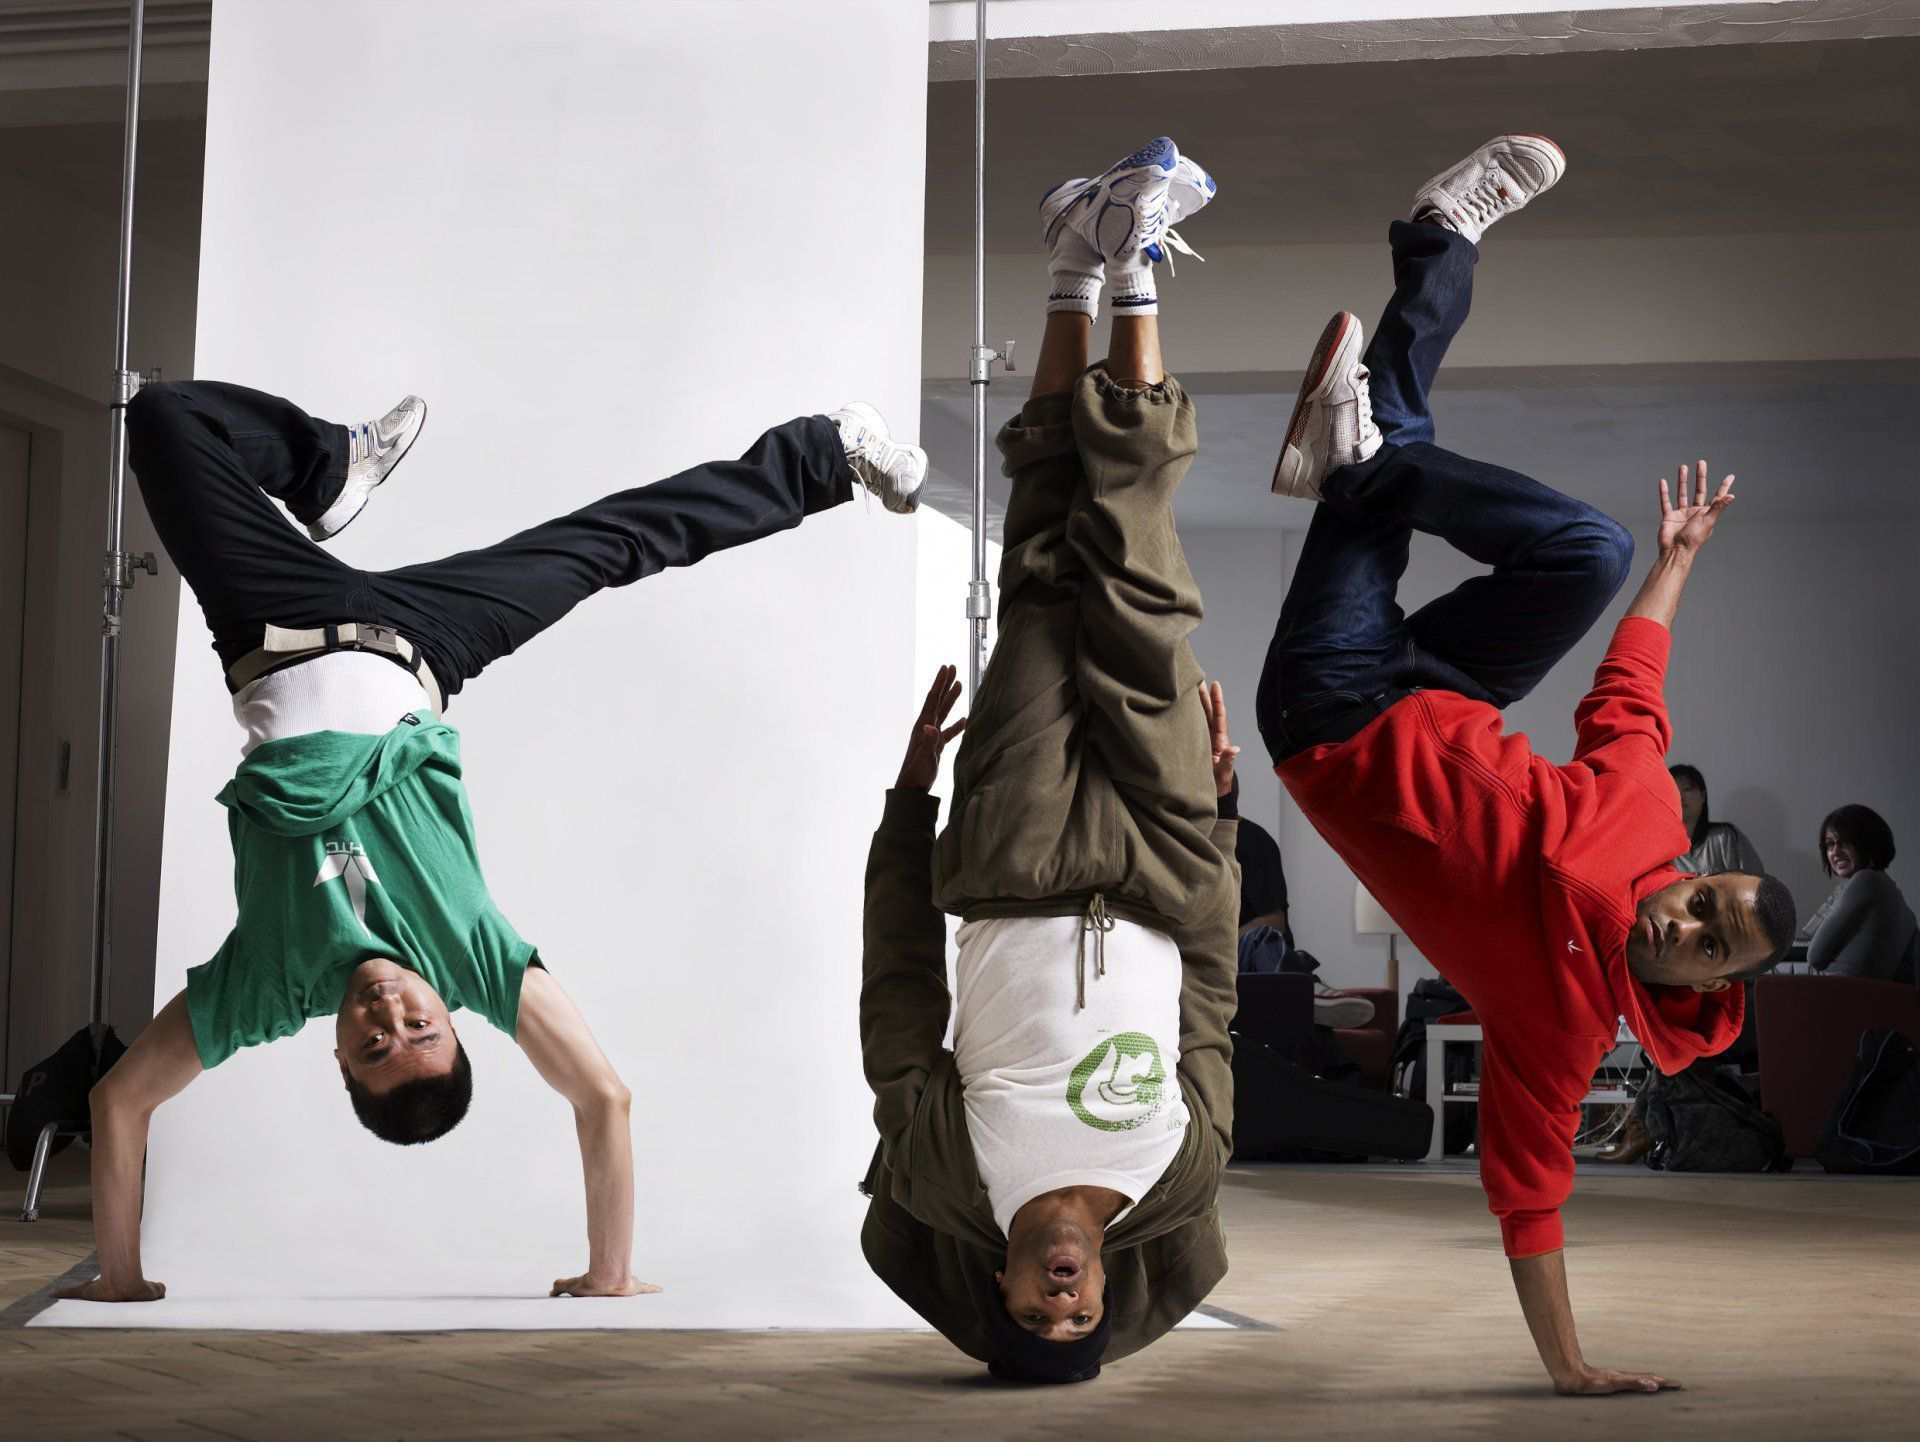 Breakdance In High Resolution